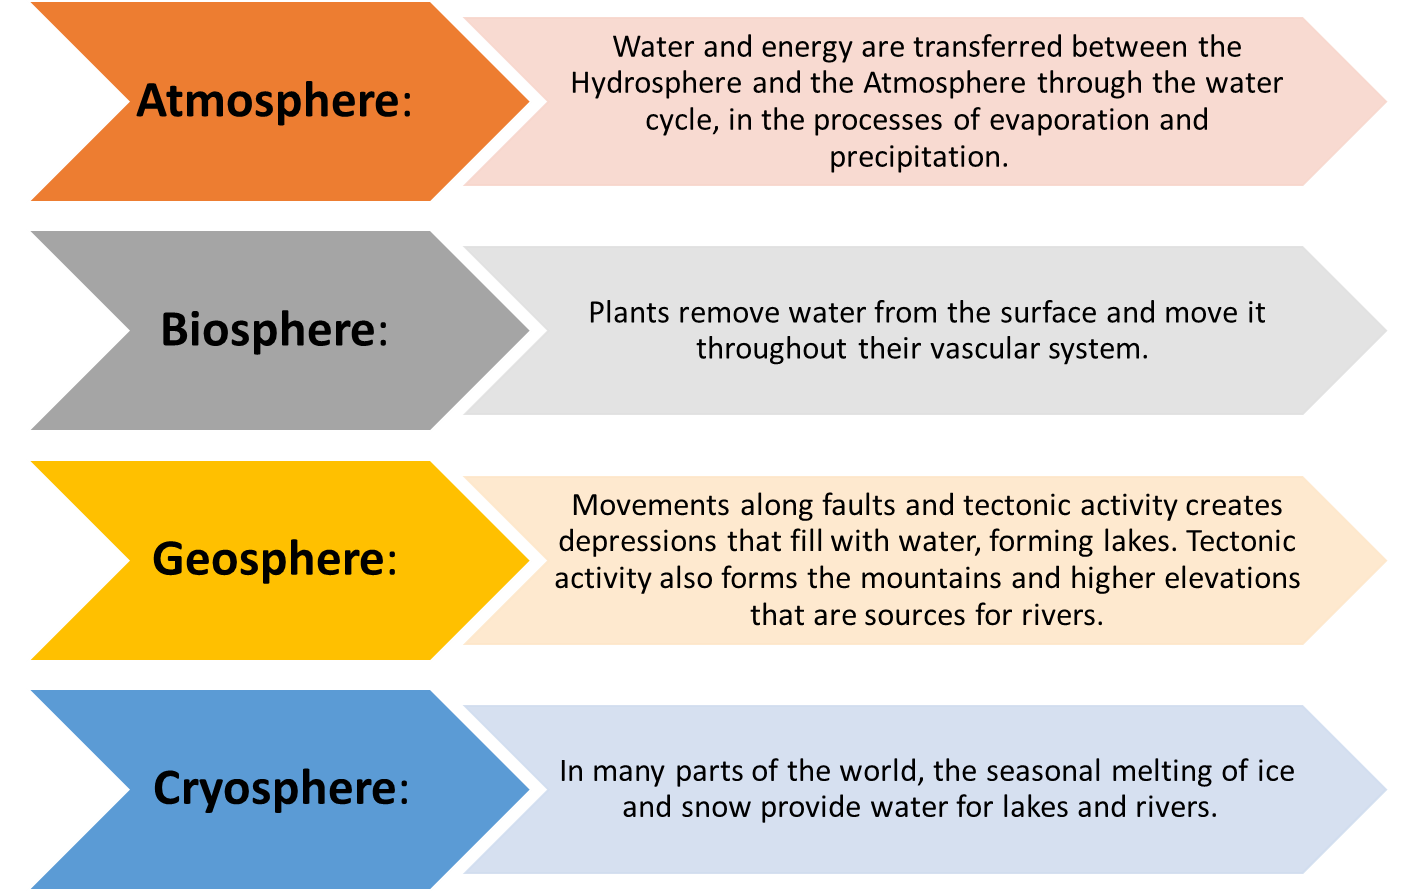 Links between other Spheres and the Hydrosphere